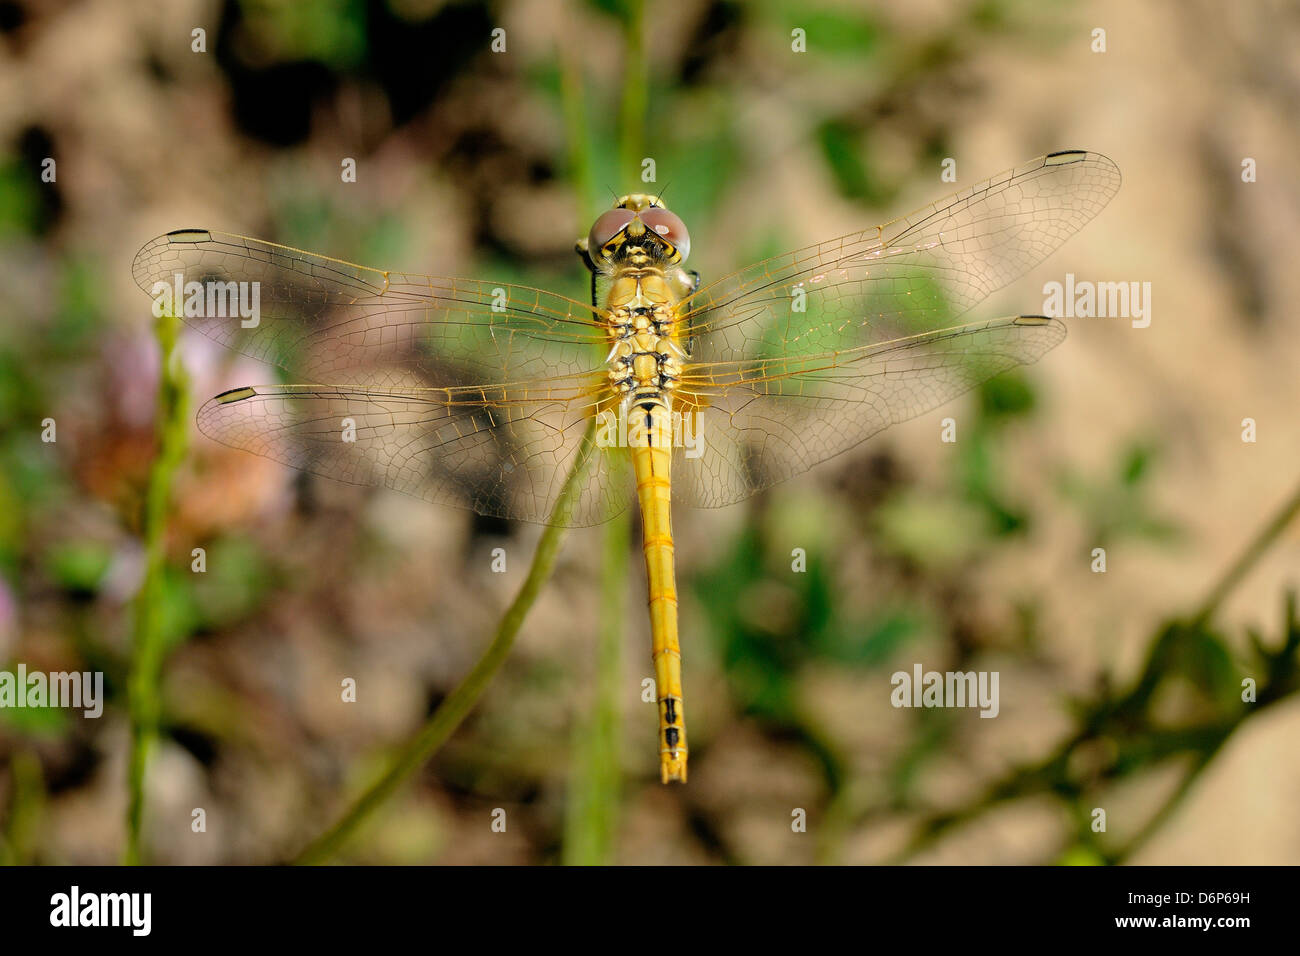 Female red-veined darter dragonfly (Sympetra fonscolombii), Hecho valley, Spanish Pyrenees, Spain, Europe - Stock Image